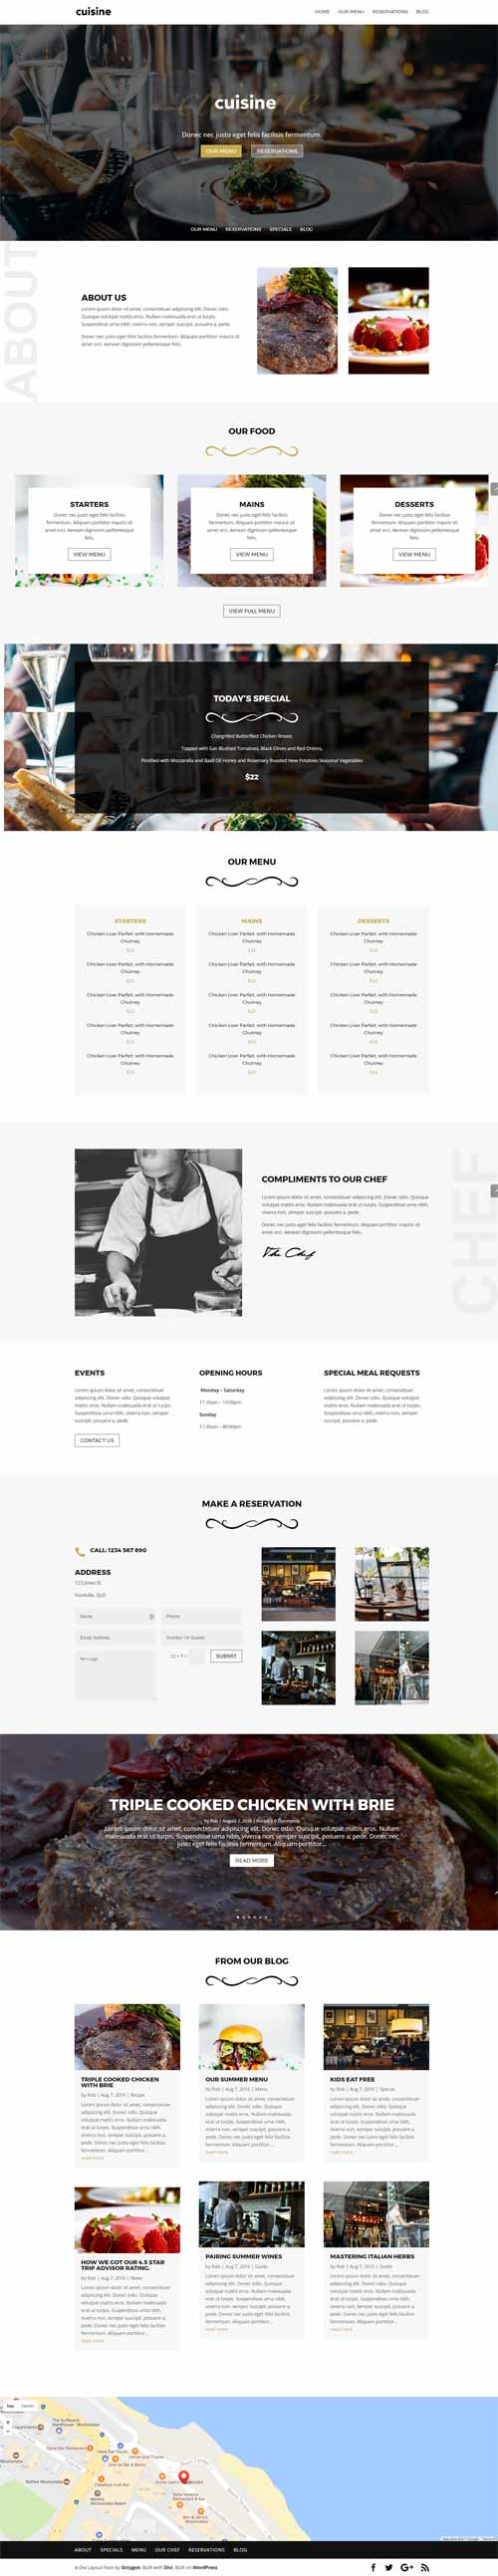 cuisine 1 page restaurant layout